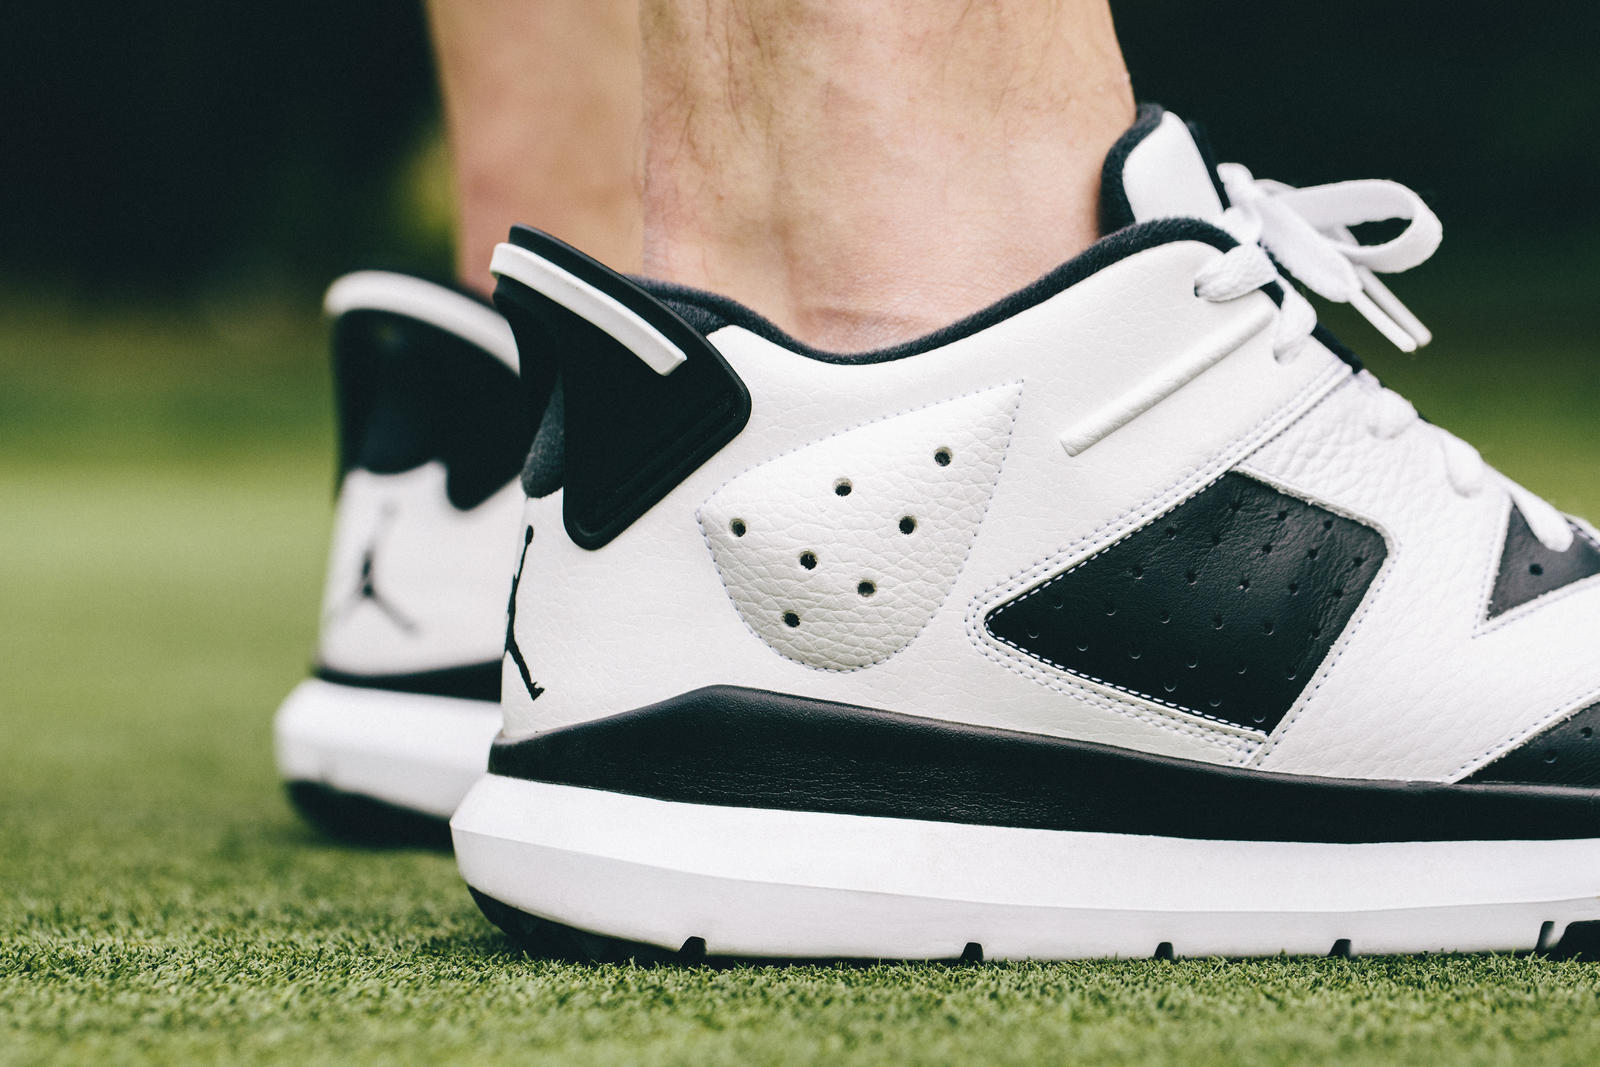 Jordan Brand Introduces the Air Jordan VI Golf Shoe - Nike News 1ecab5f9d